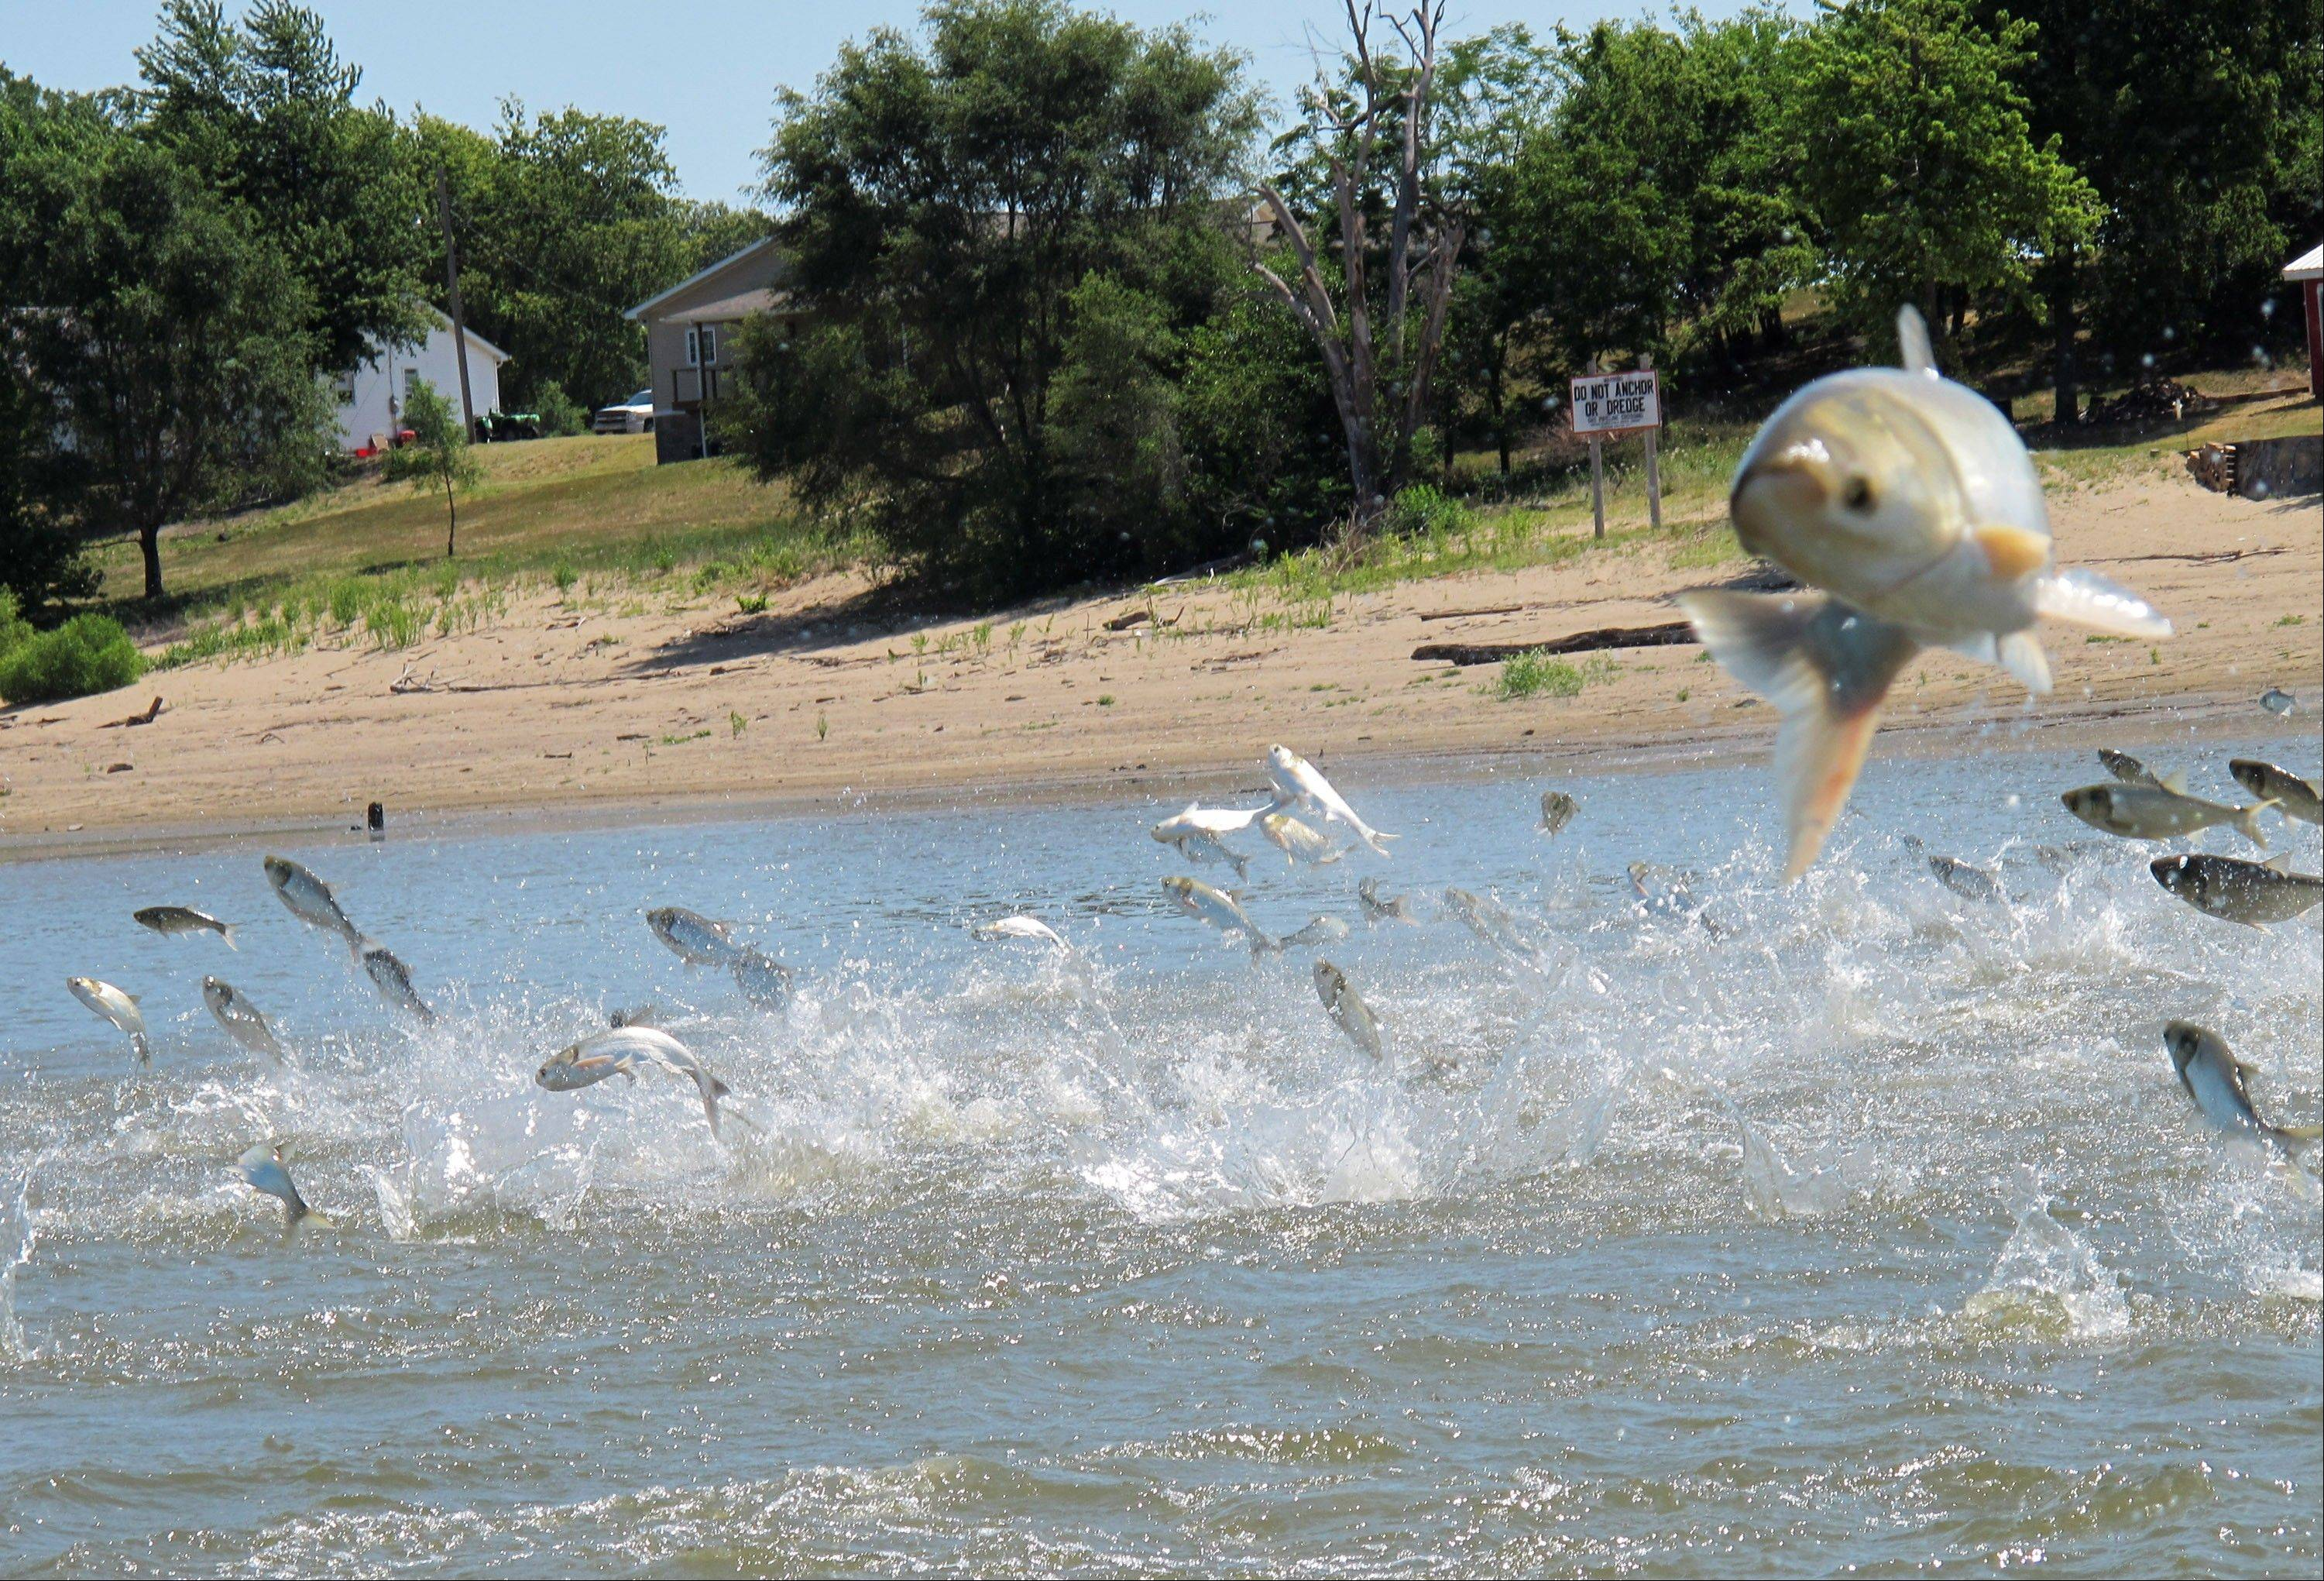 Asian carp, jolted by an electric current from a research boat, jump from the Illinois River near Havana, Ill., during a study on the fish's population. Bowhunters are being invited to shoot as many Asian carp as possible in a competition planned for July.